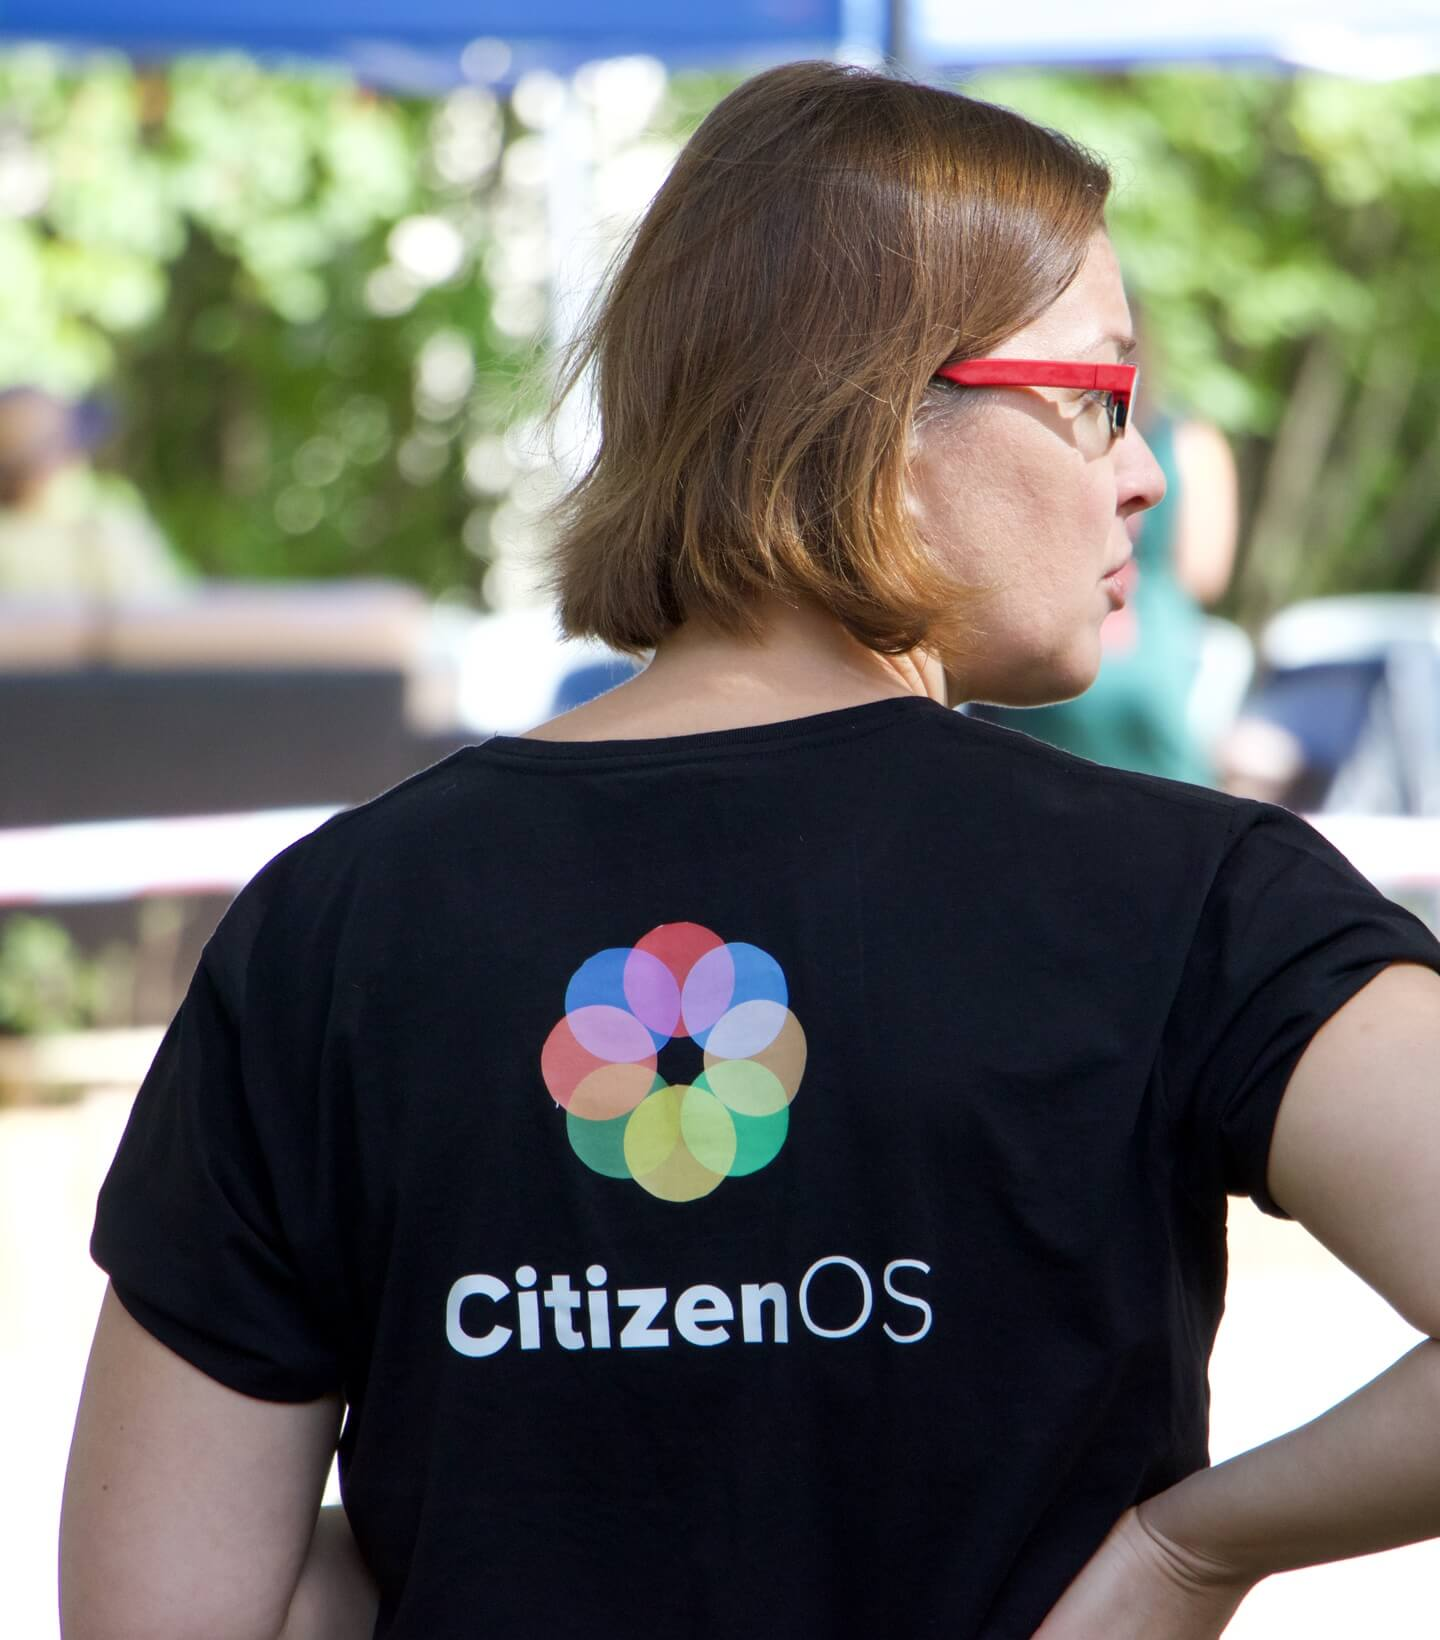 A female member of Citizen OS staff attending an event to answer questions about the platform.